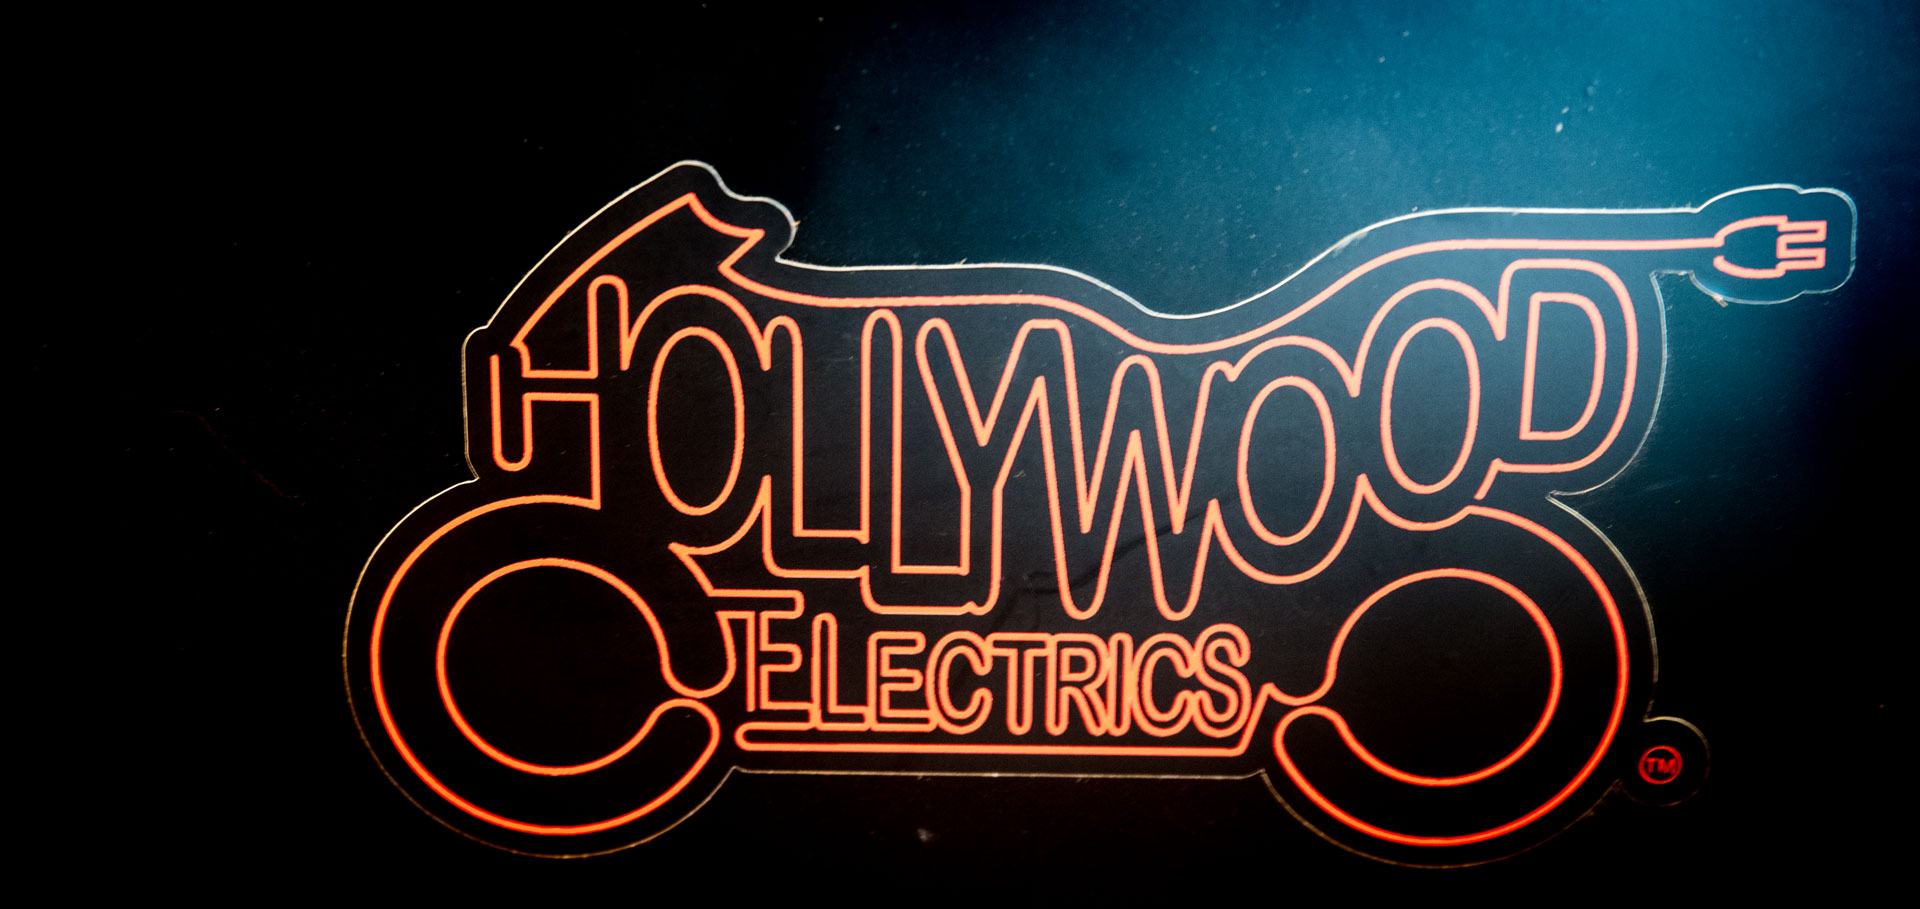 Hollywood Electrics